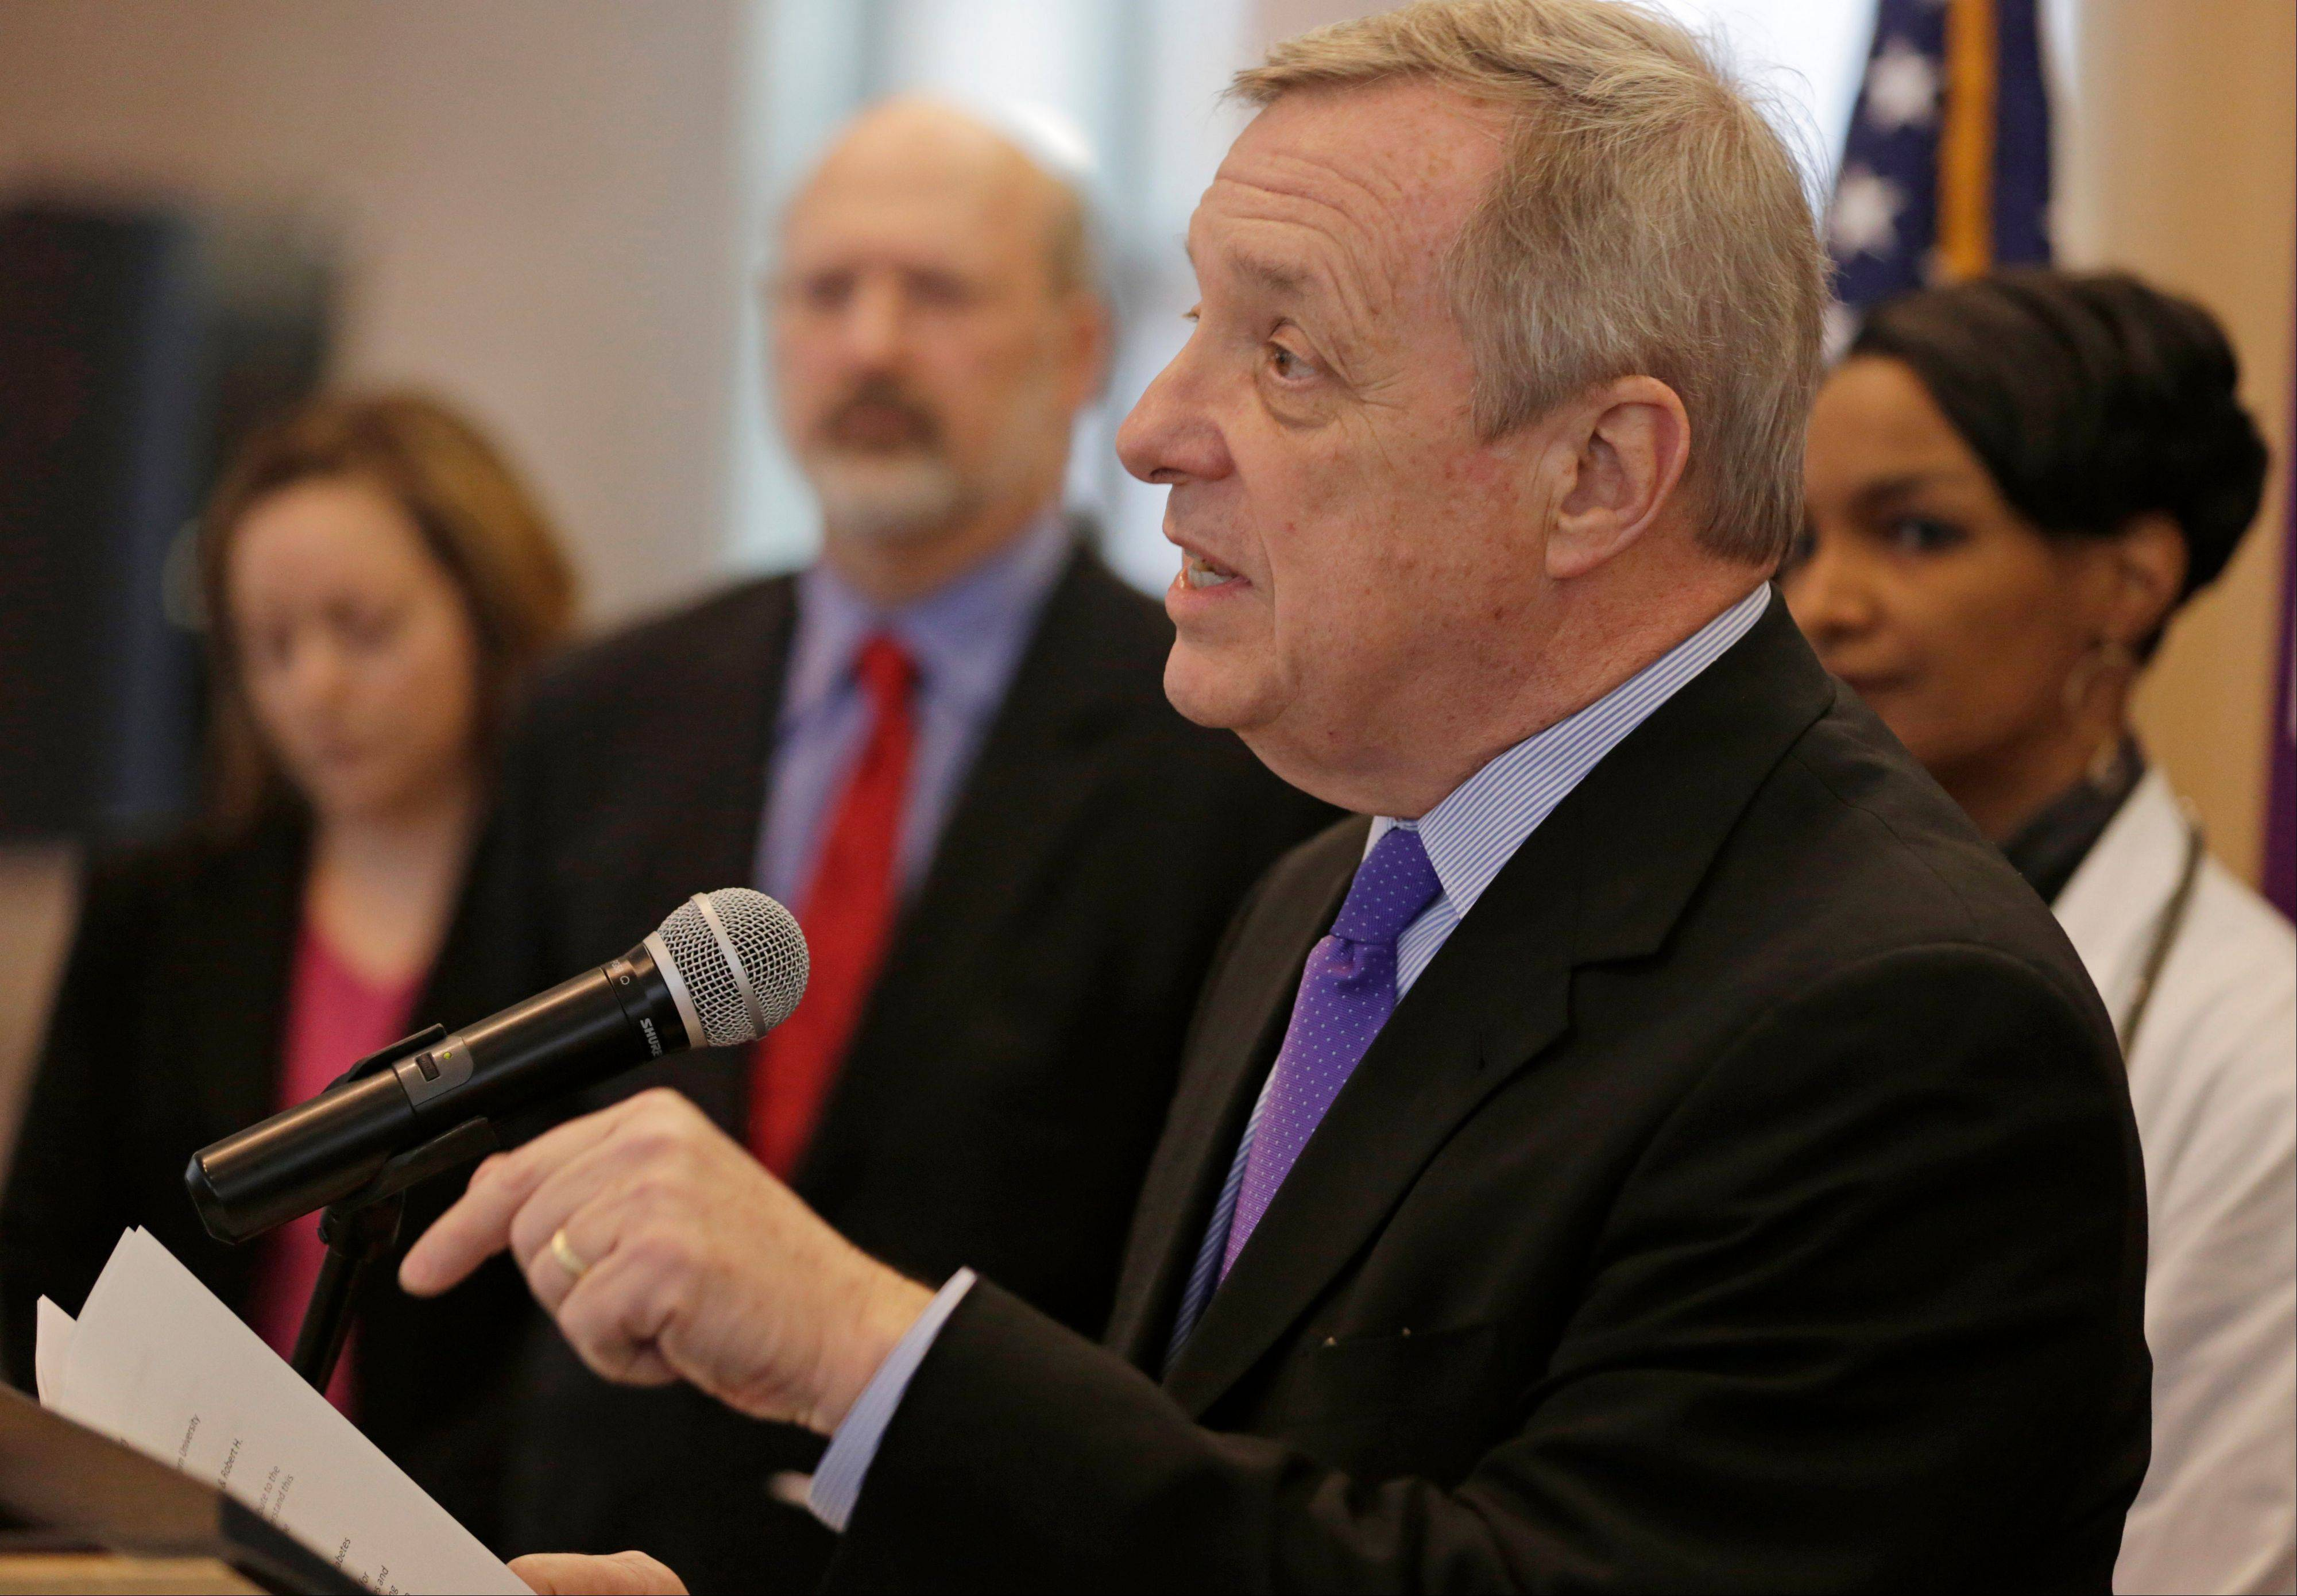 U.S. Sen. Dick Durbin, a Springfield Democrat, speaks about the impact of the government sequestration budget cuts on the state's leading research universities and hospitals during a news conference Friday in Chicago.